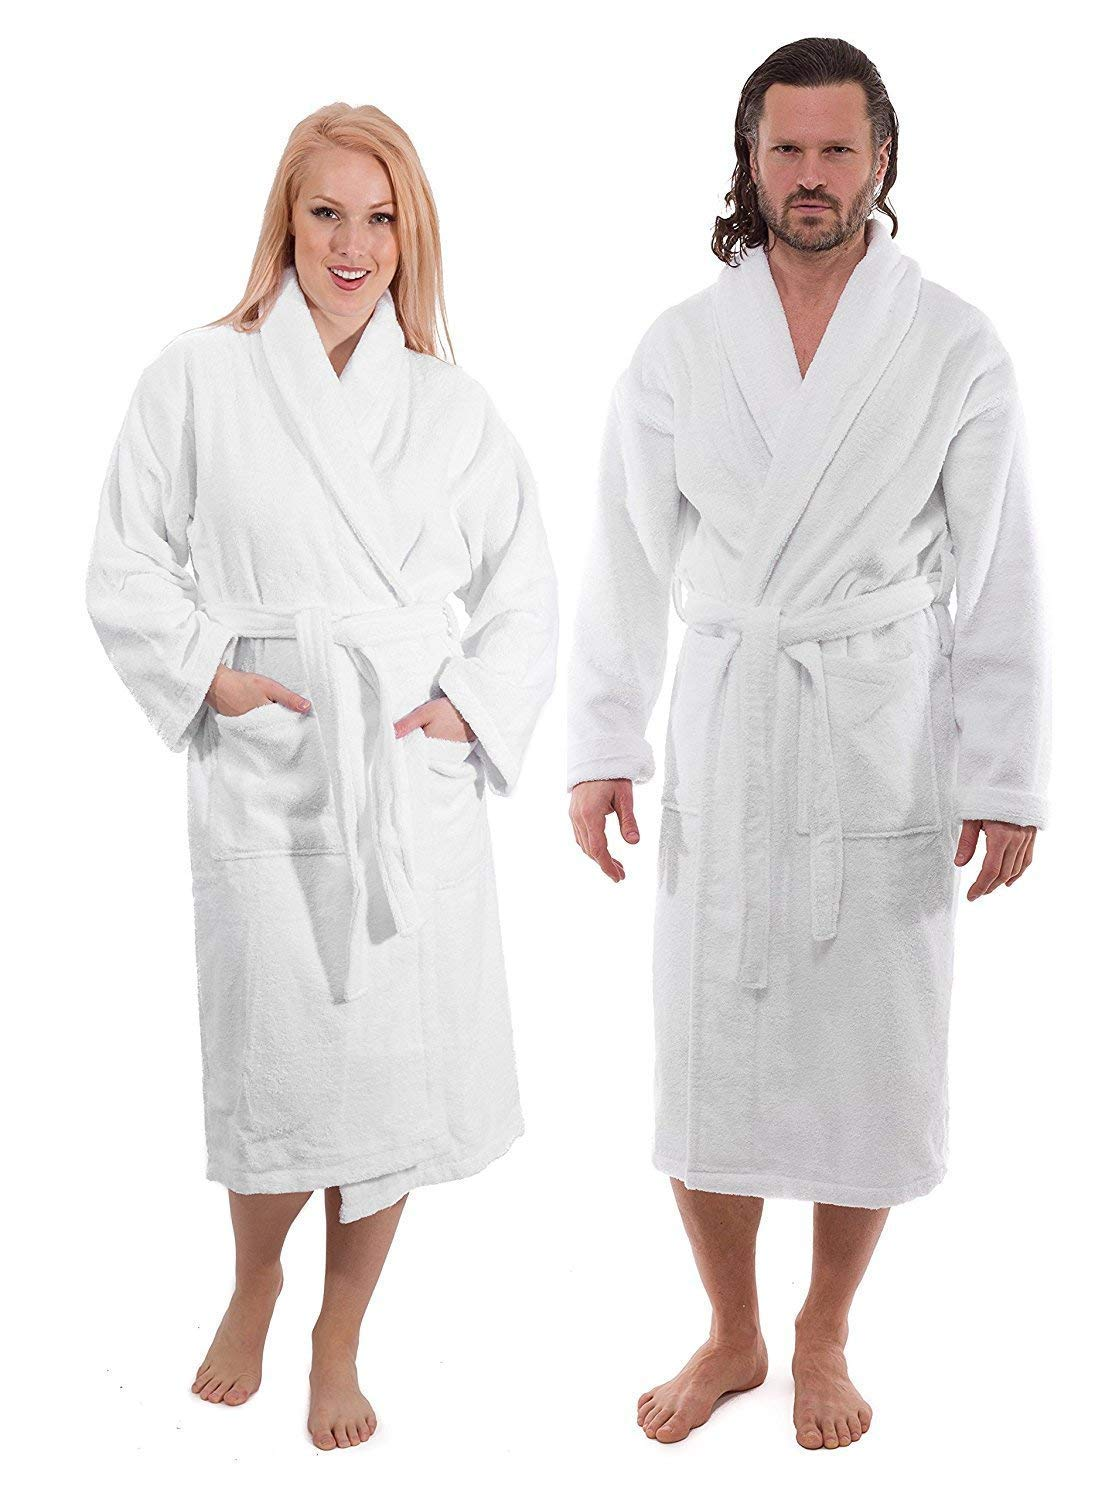 Luxury Terry Cotton Cloth Plush Bathrobe - Premium Cotton Hotel and Spa Robes for Men and Women - Made with 100% Turkish Quality Cotton (Small) Classic Turkish Towels COMIN18JU049912